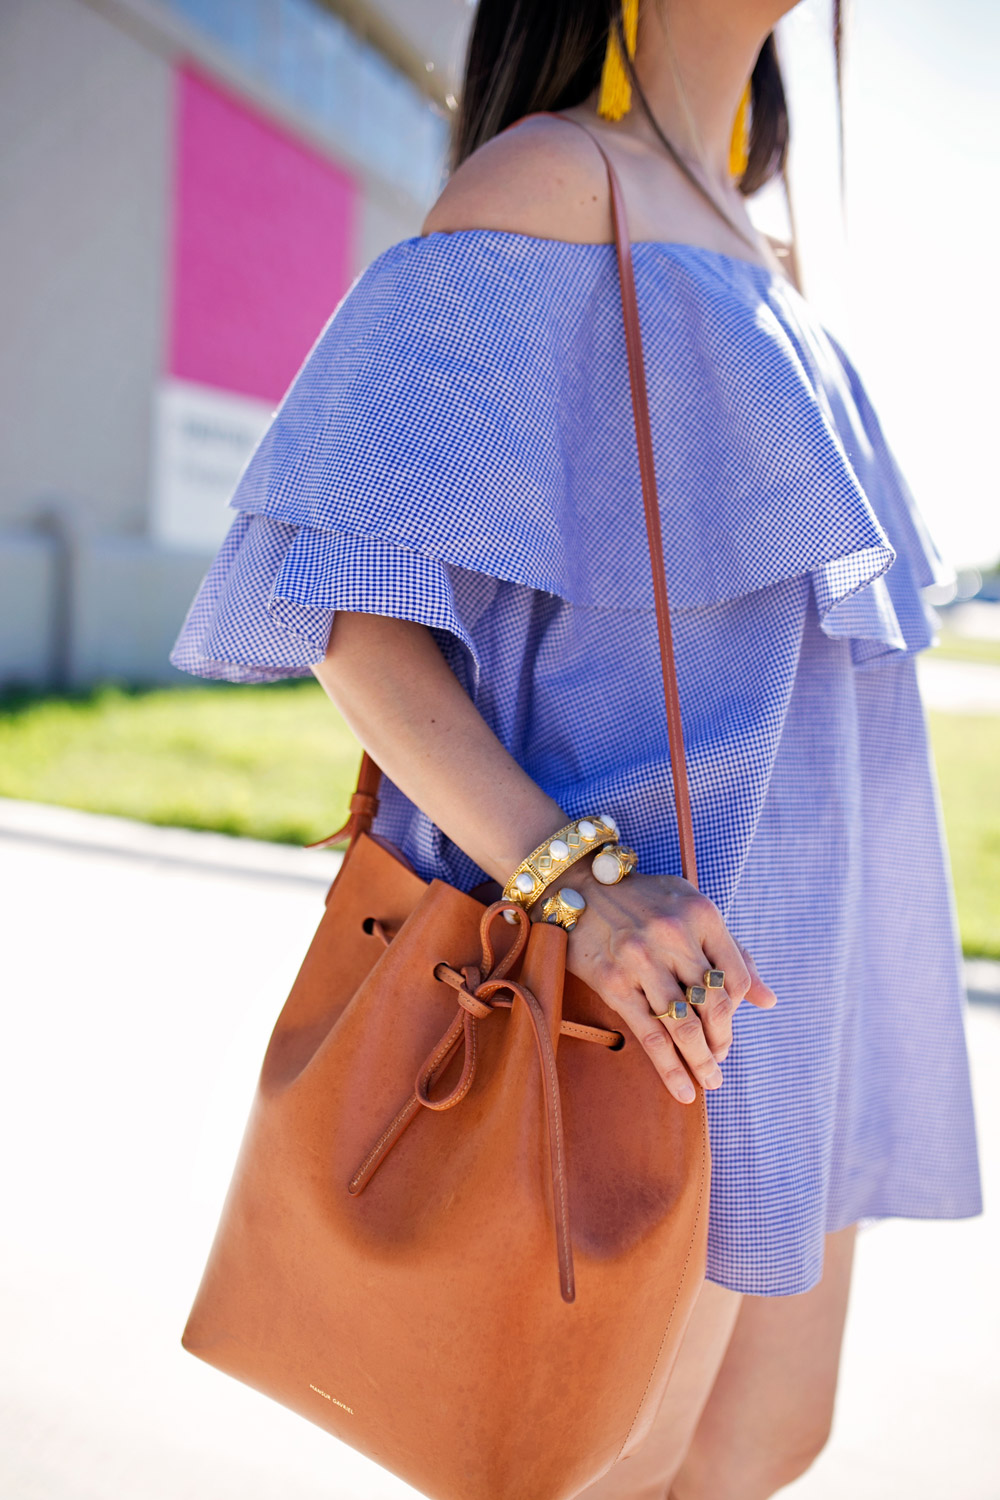 mansur gavriel bucket bag in cammello, julie vos bracelets